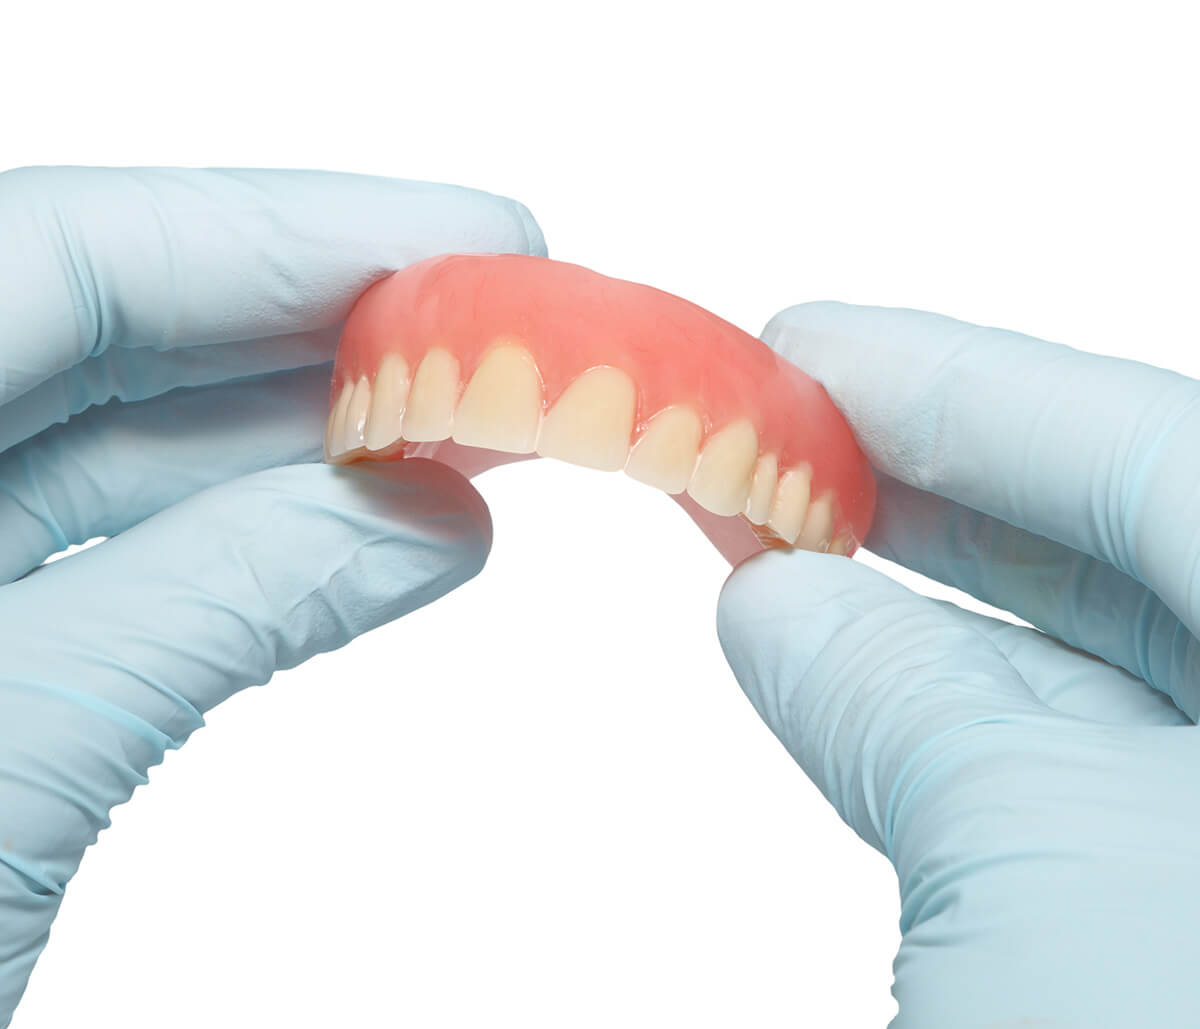 In Pembroke Pines Area Dentist Explains Complete and Partial Dentures for Tooth Replacement